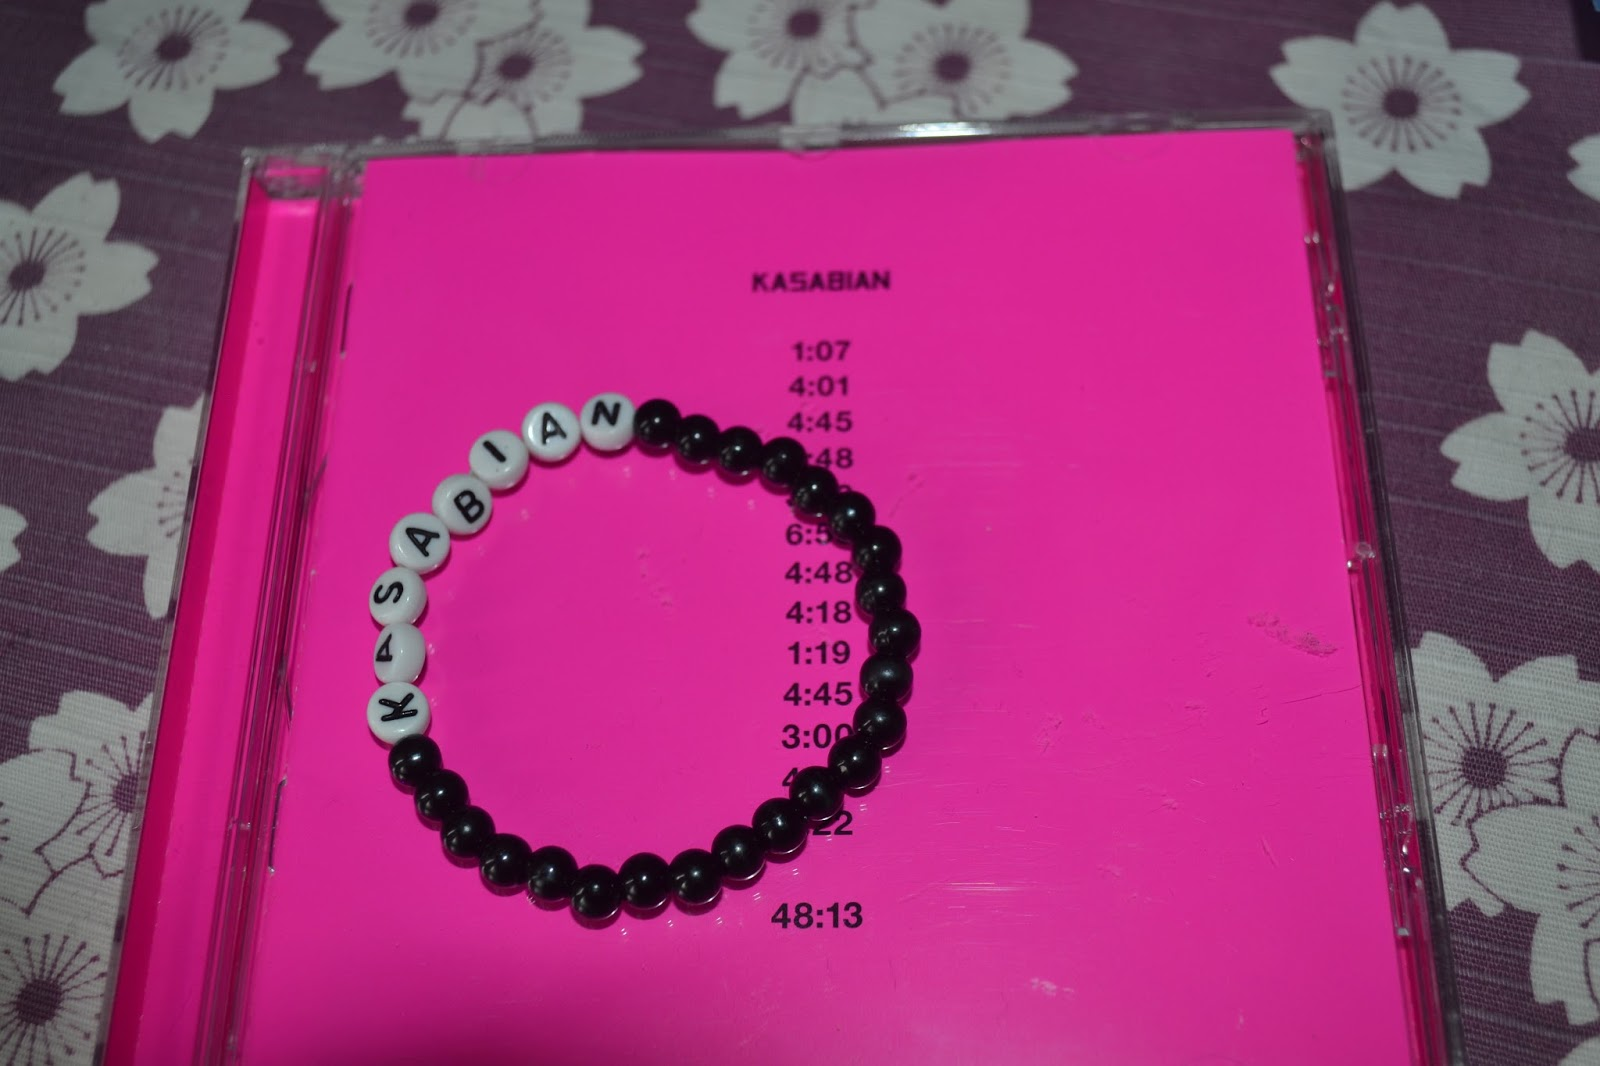 Kasabian 48:13 and Kasabian bracelet